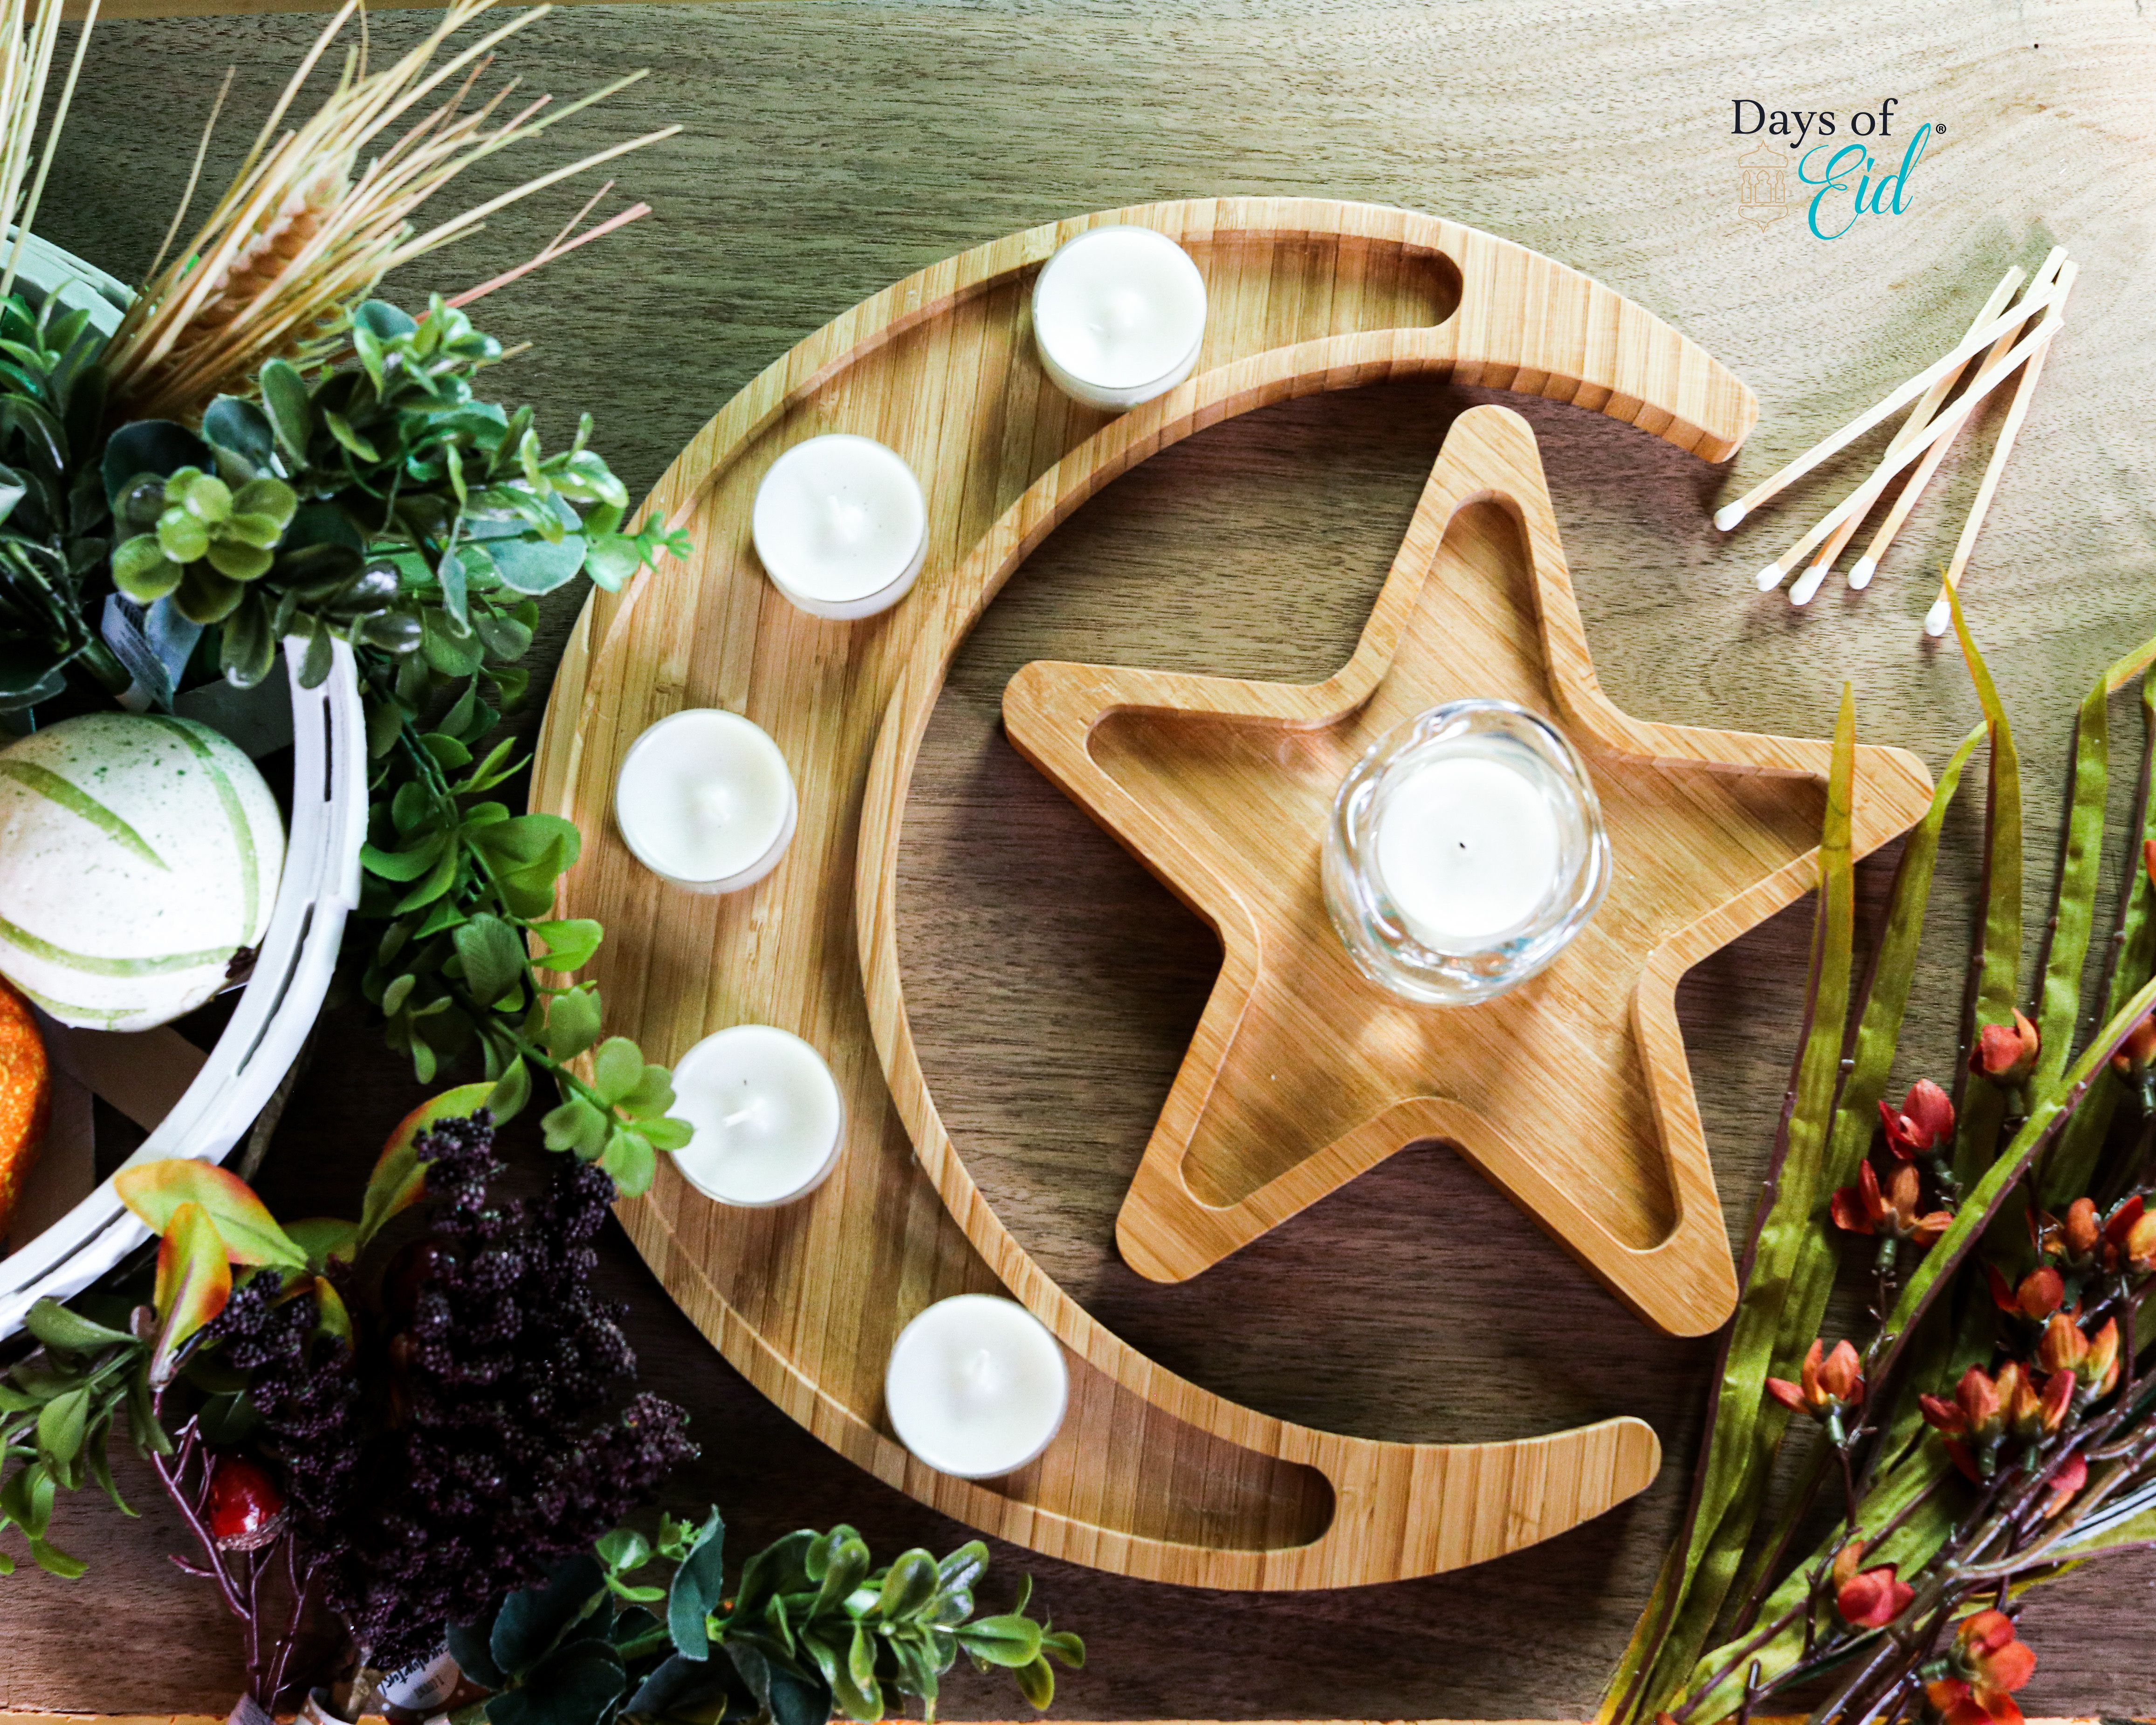 Our Moon and Star Platters are perfect for dates, fruit, charcuterie, or even as a stunning table centerpiece. Tap to shop. Ramadan Activities, Ramadan Crafts, Ramadan Decorations, Ramadan Food, Eid Moon, Paper Star Lanterns, Burlap Signs, Paper Stars, Charcuterie